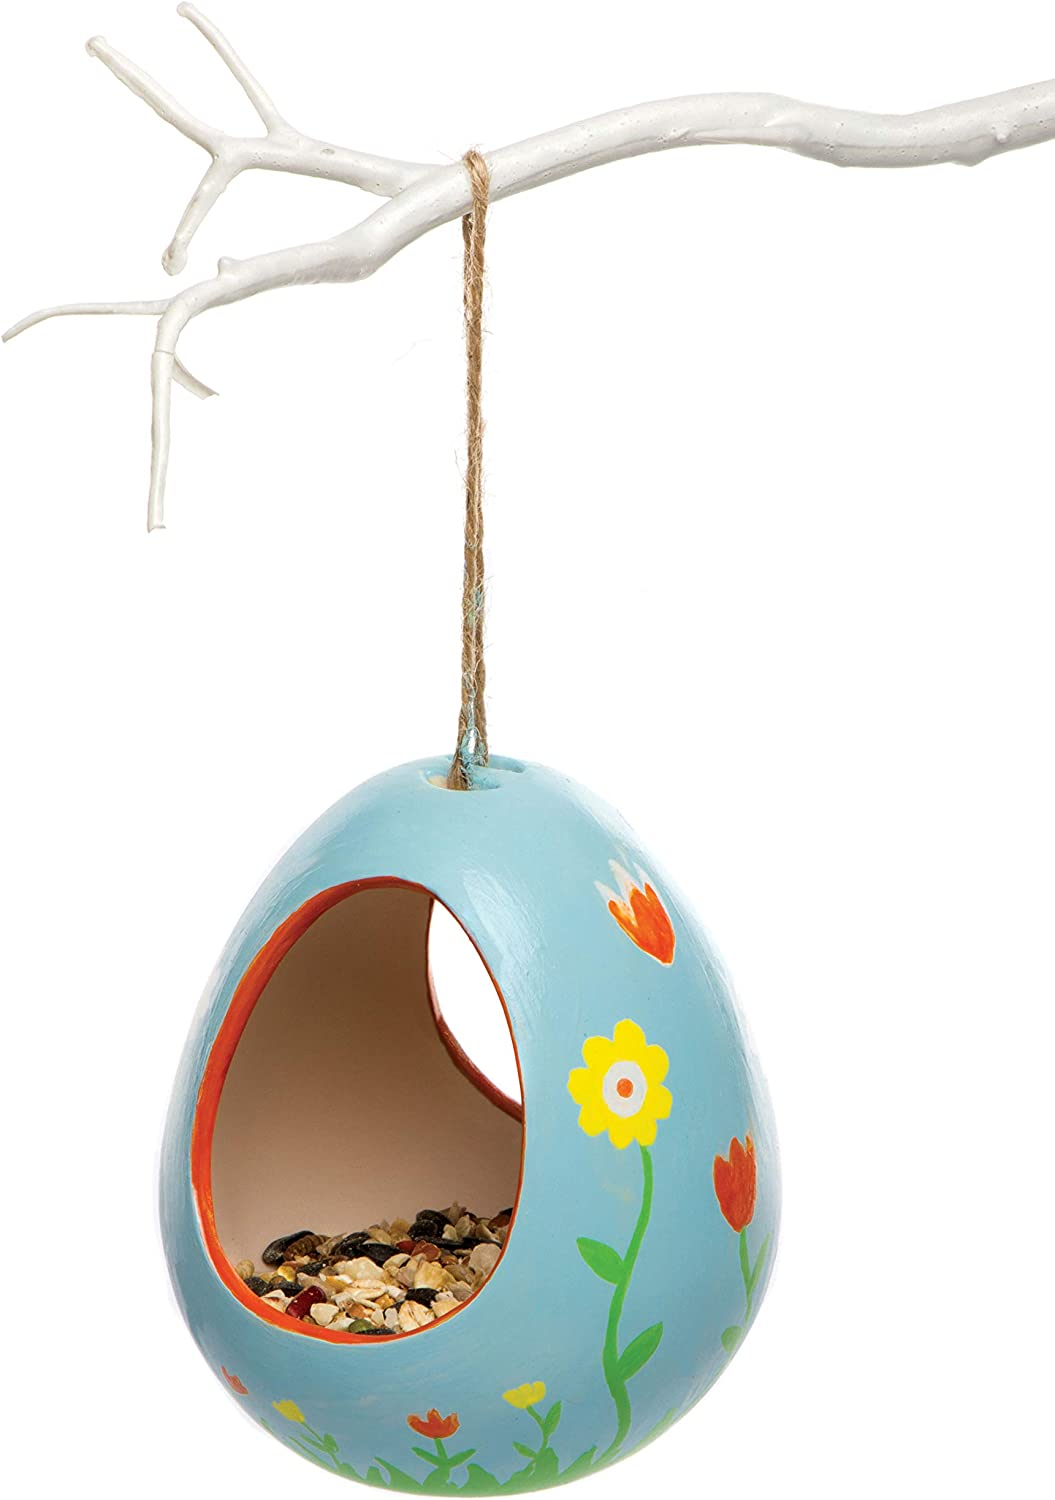 Baker Ross Ar267 Bird Feeders For Crafts Pack Of 2 Ceramic Painting Art Activities For Kids 11cmx9cm Amazon Co Uk Kitchen Home